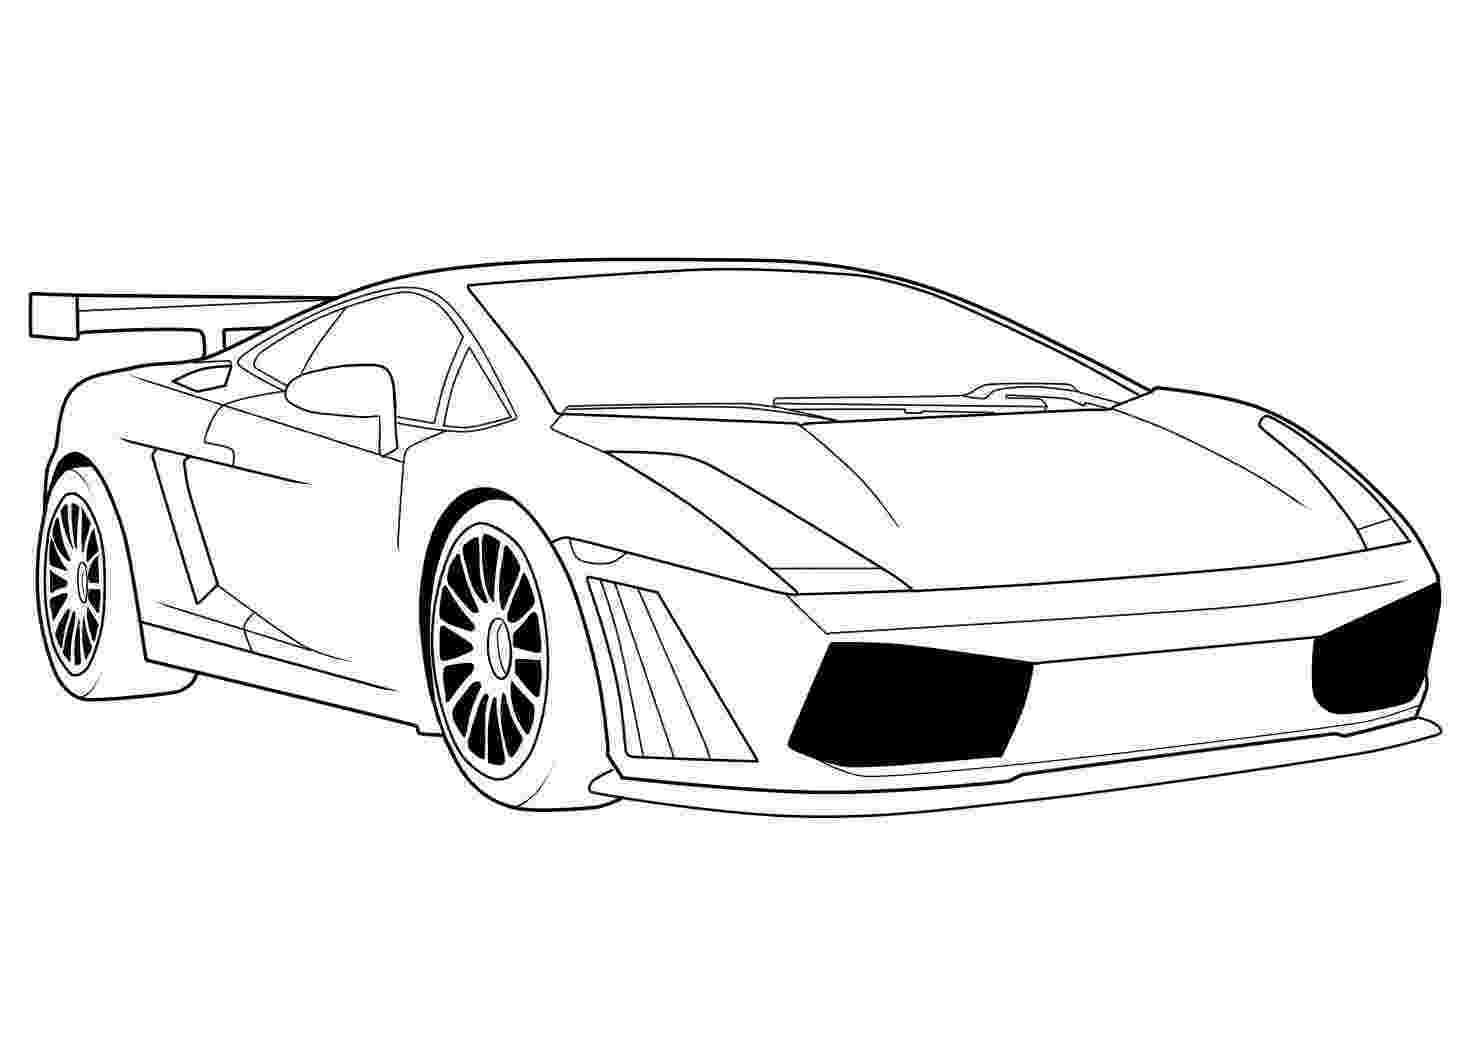 car picture to color cars coloring pages best coloring pages for kids to color car picture